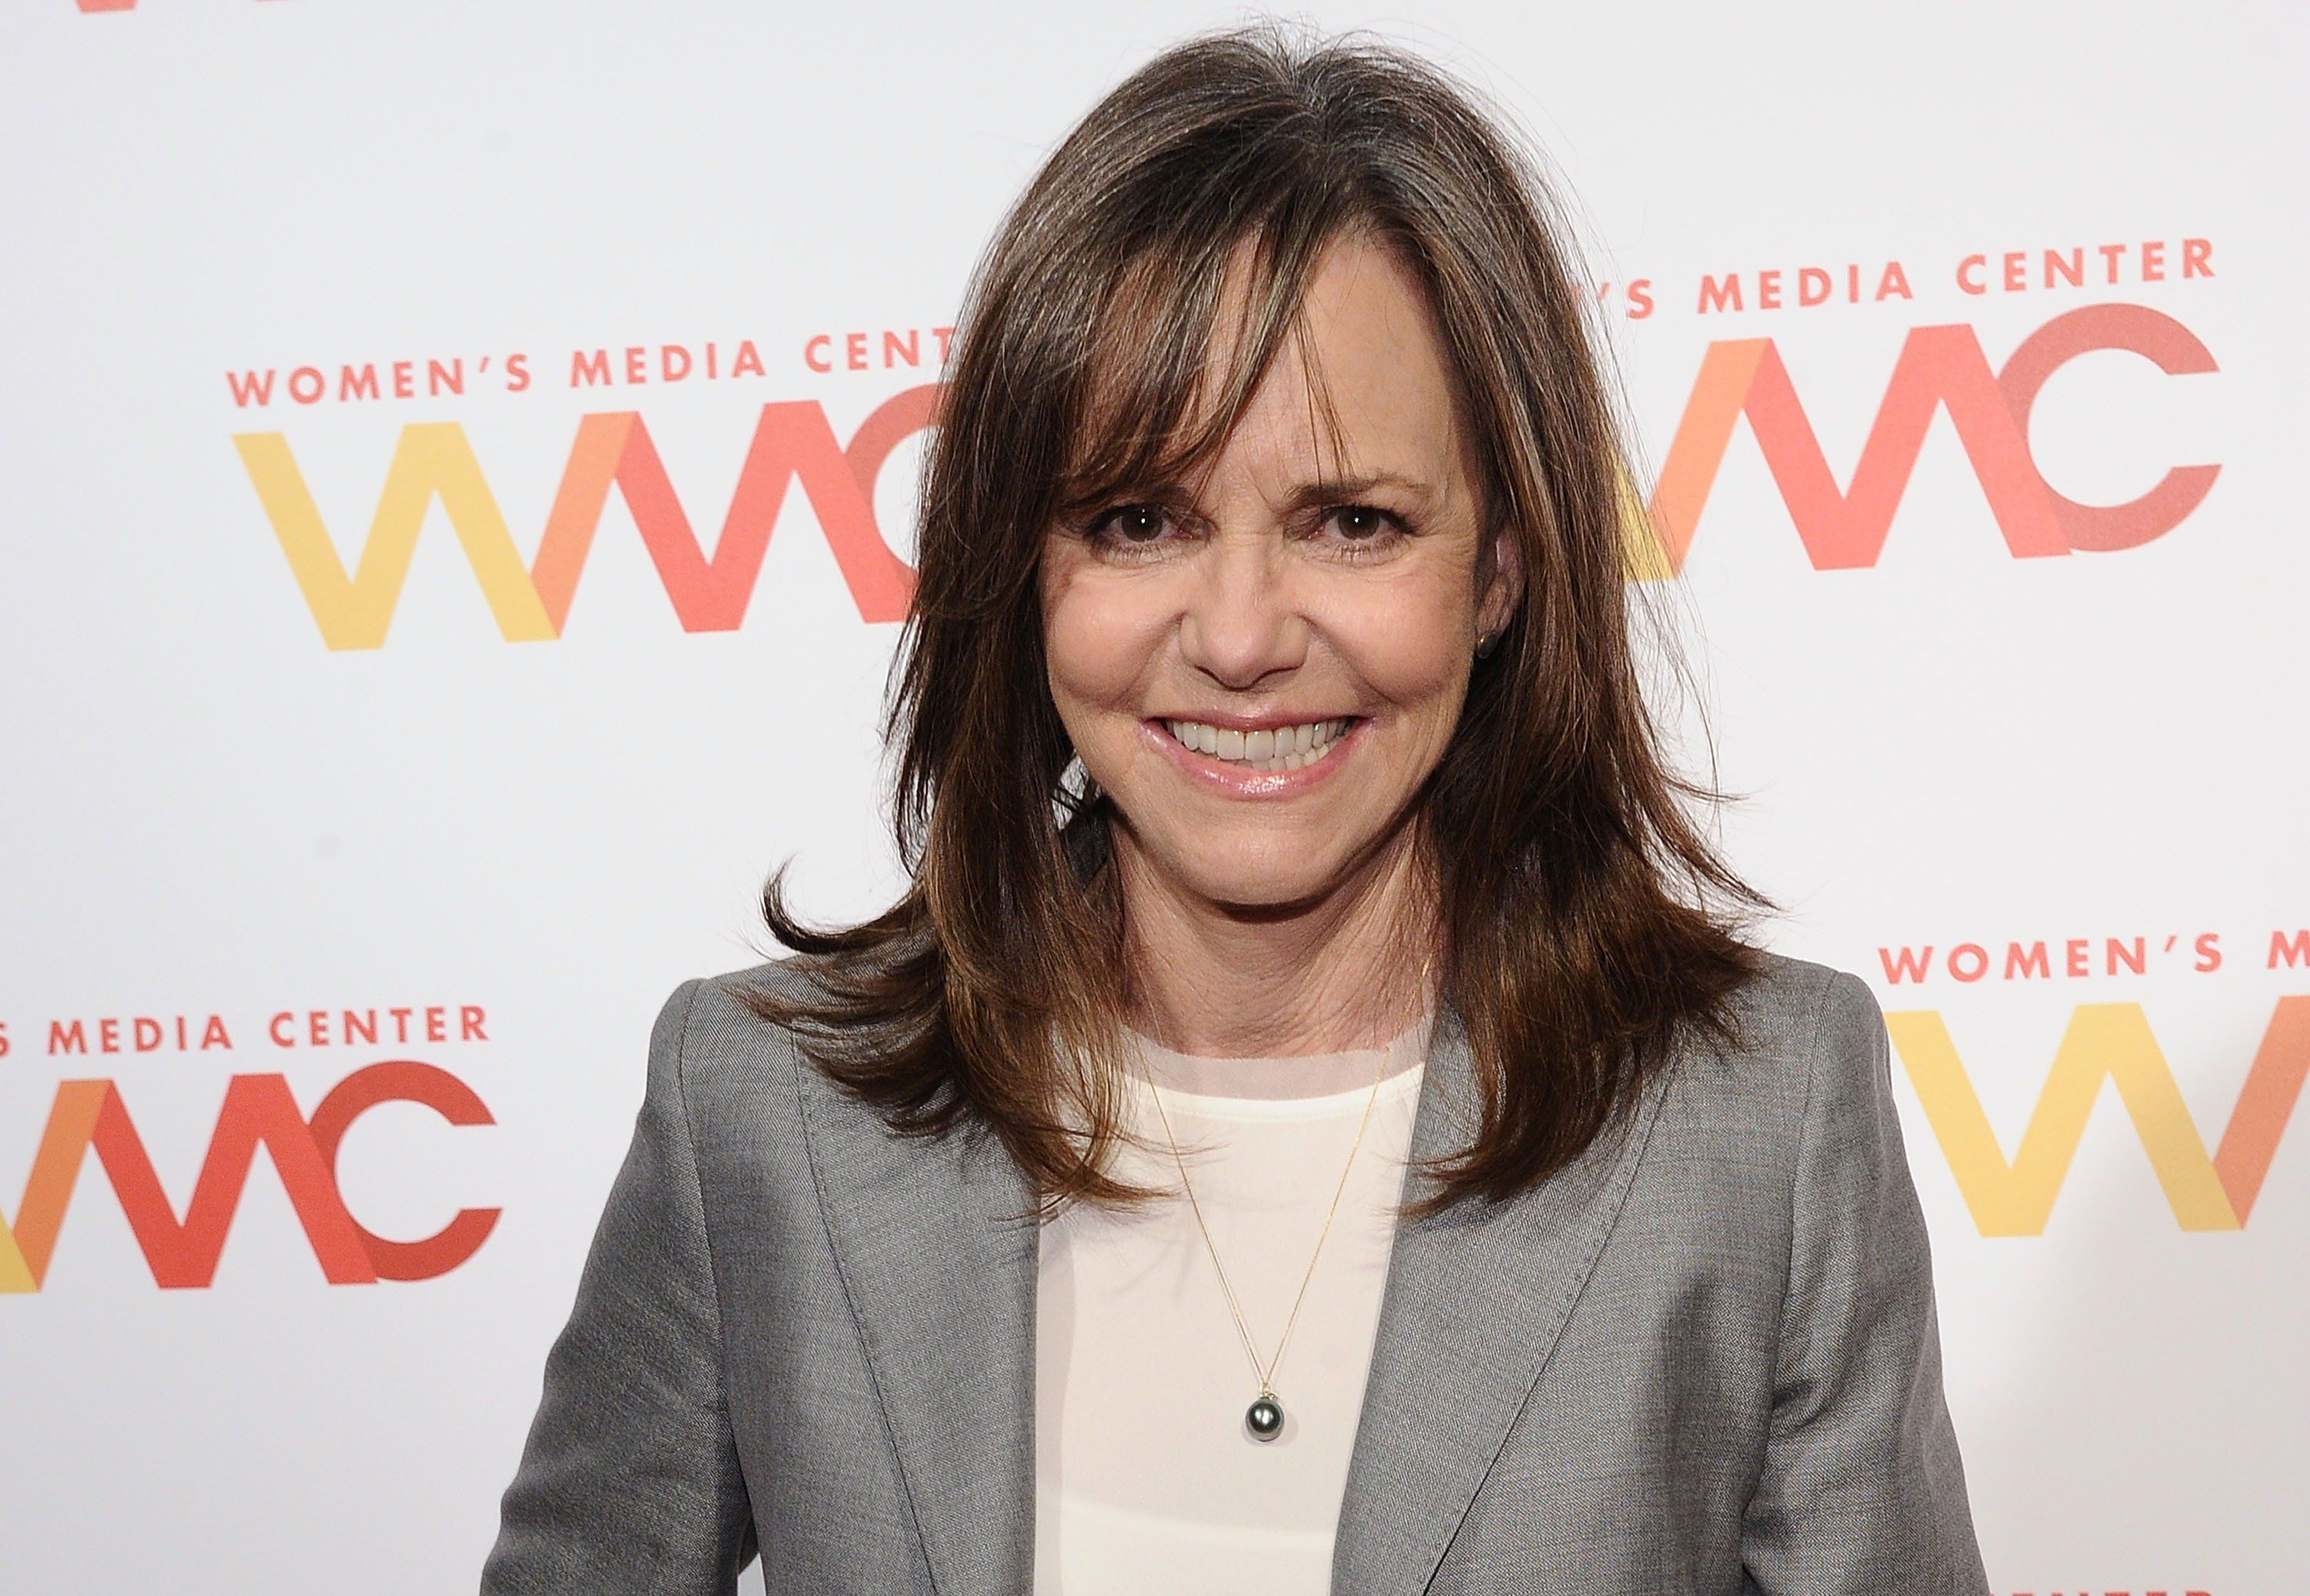 NEW YORK, NY - NOVEMBER 05:  Actress Sally Field attends The Women's Media Center 2015 Women's Media Awards at Capitale on November 5, 2015 in New York City.  (Photo by Daniel Zuchnik/WireImage)